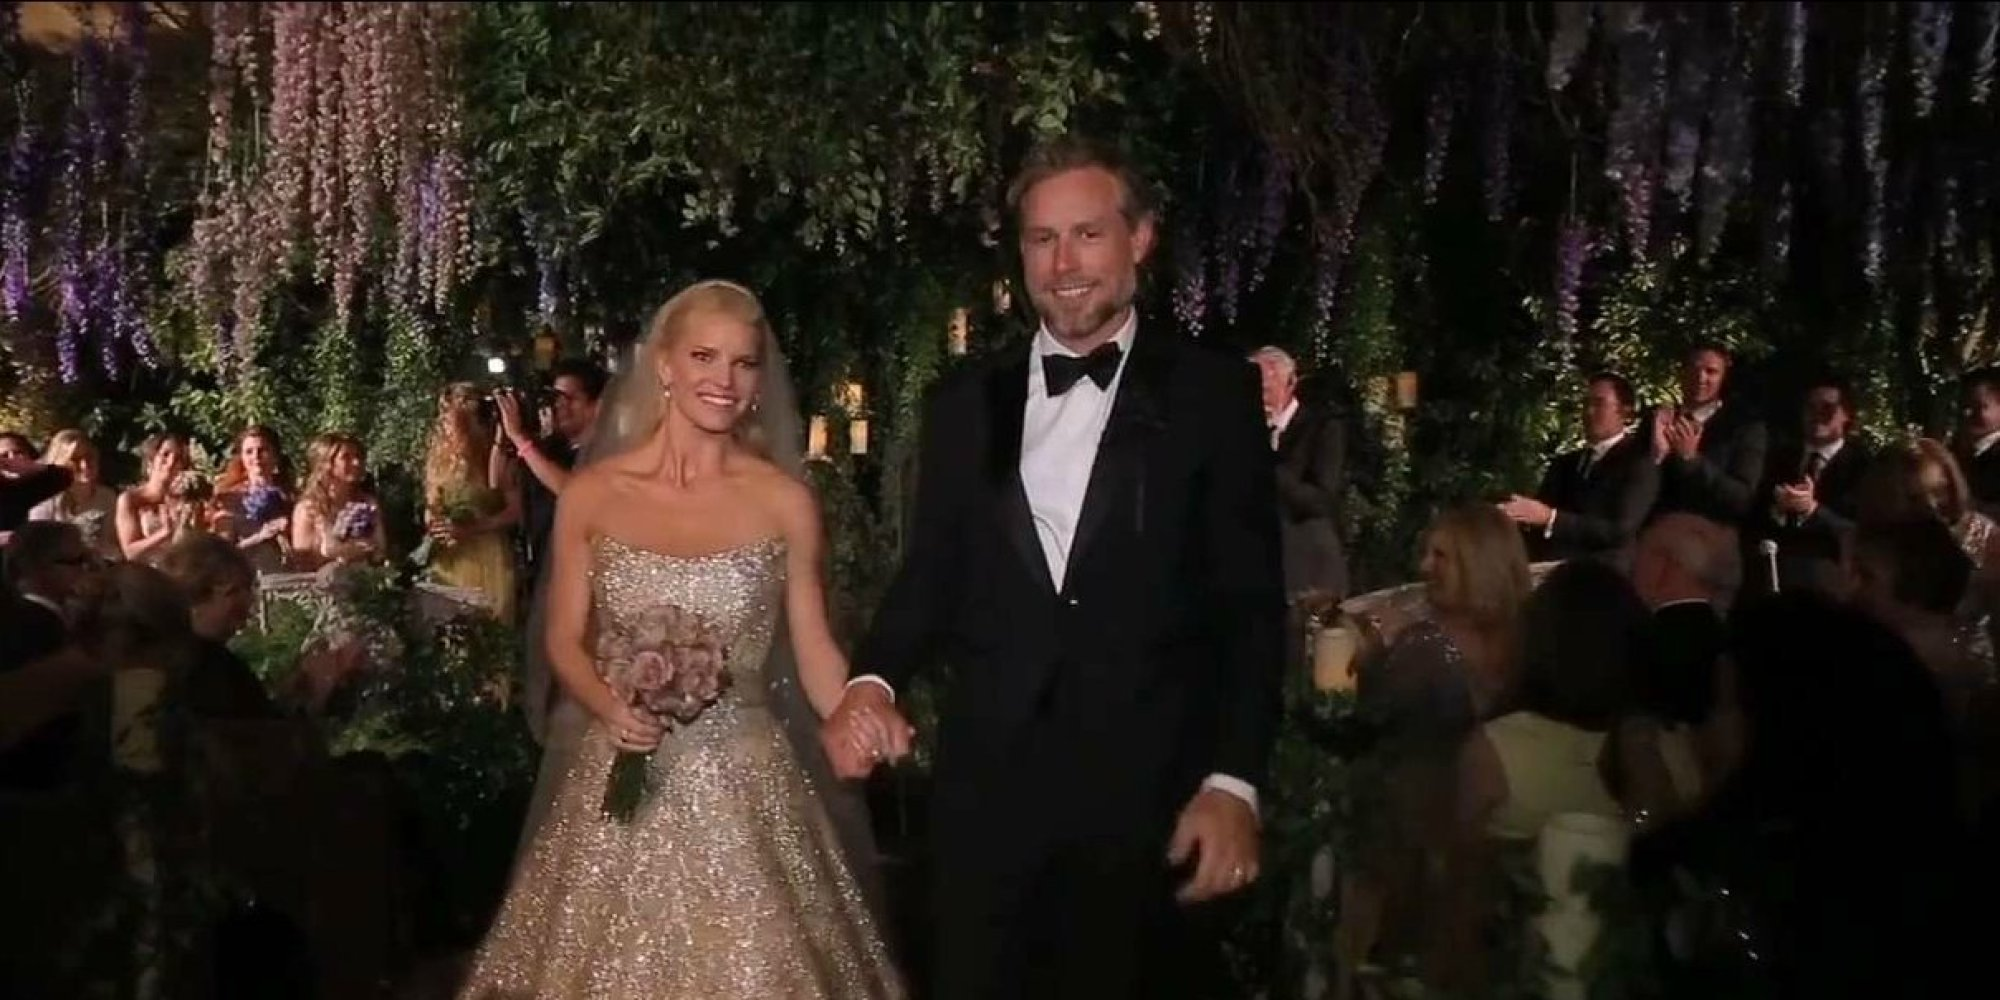 Jessica Simpsons Wedding Video Has Arrived And Its As Amazing As You Expected It To Be  HuffPost